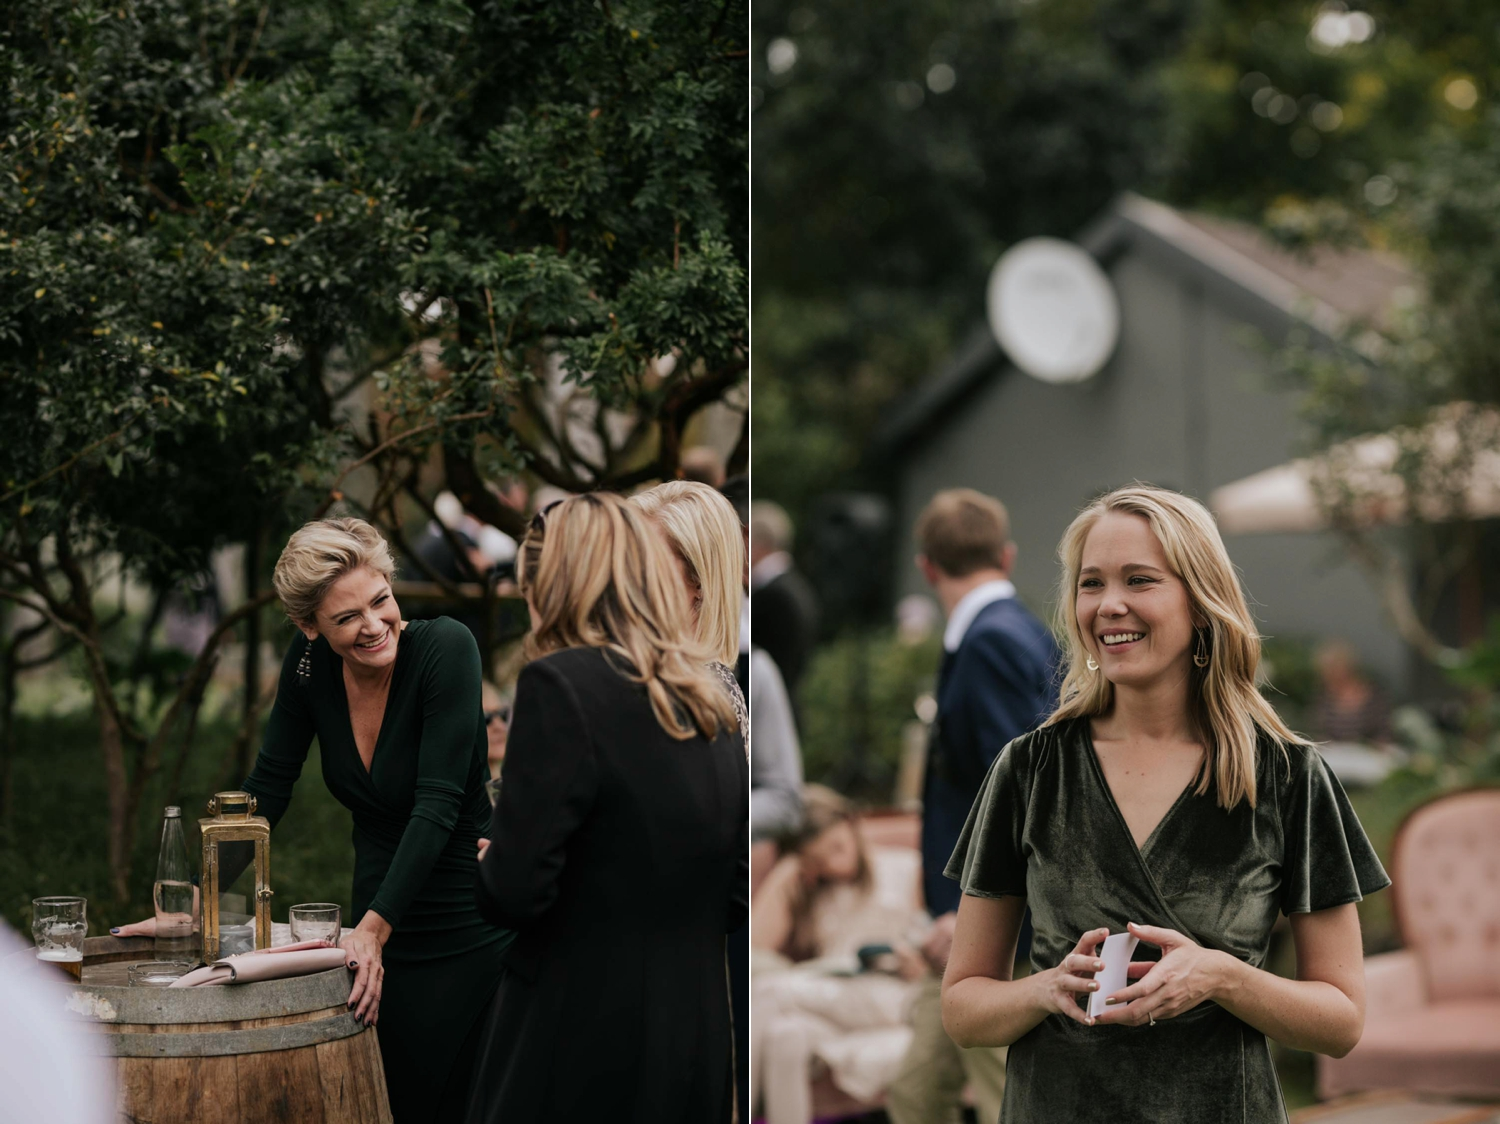 Candid moments of guests during cocktail hour at wedding standing under trees and having a good time. Documentary style wedding photography in Vancouver.